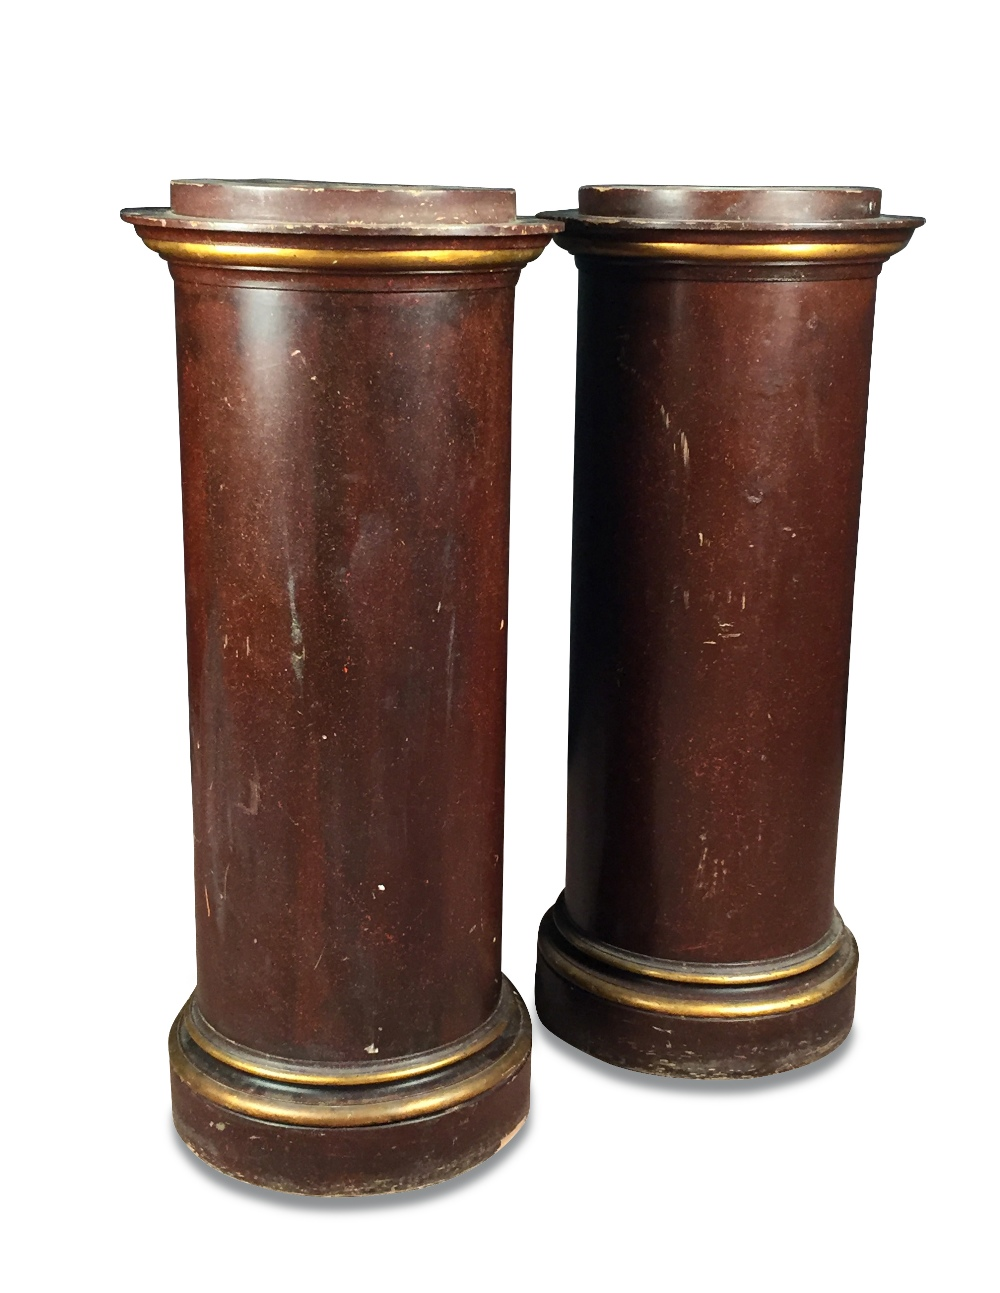 Lot 788 - A pair of faux porphyry pedestal columns, with moulded gilt edged capitals and plinth bases (2)